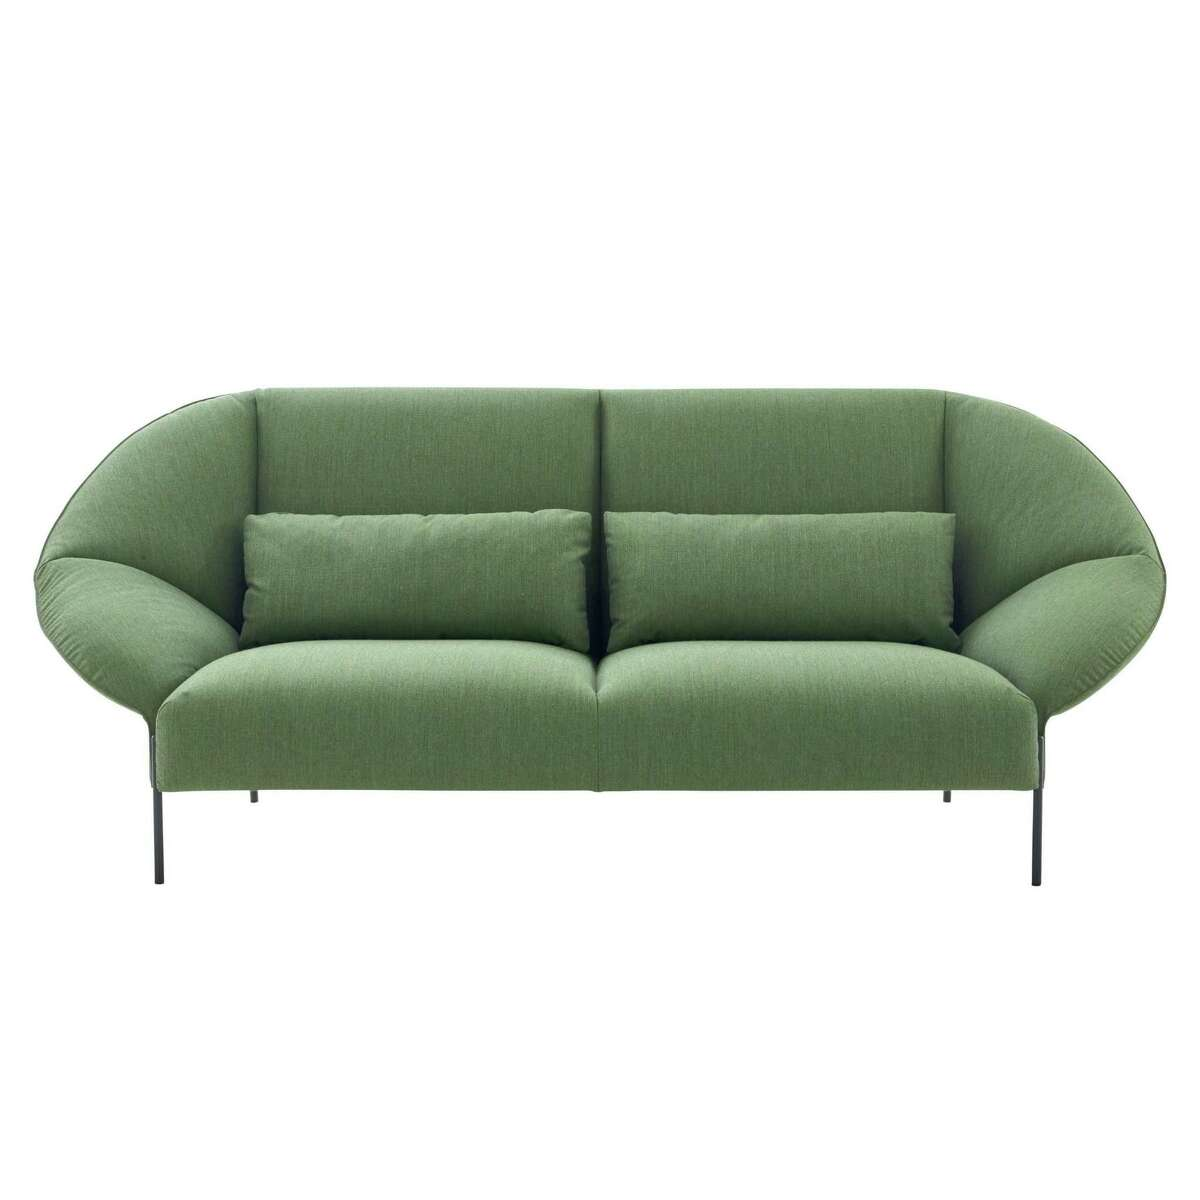 Ligne Roset's Paipai collection by LucidiPevere includes a loveseat, $3,285, and sofa, $4,445.